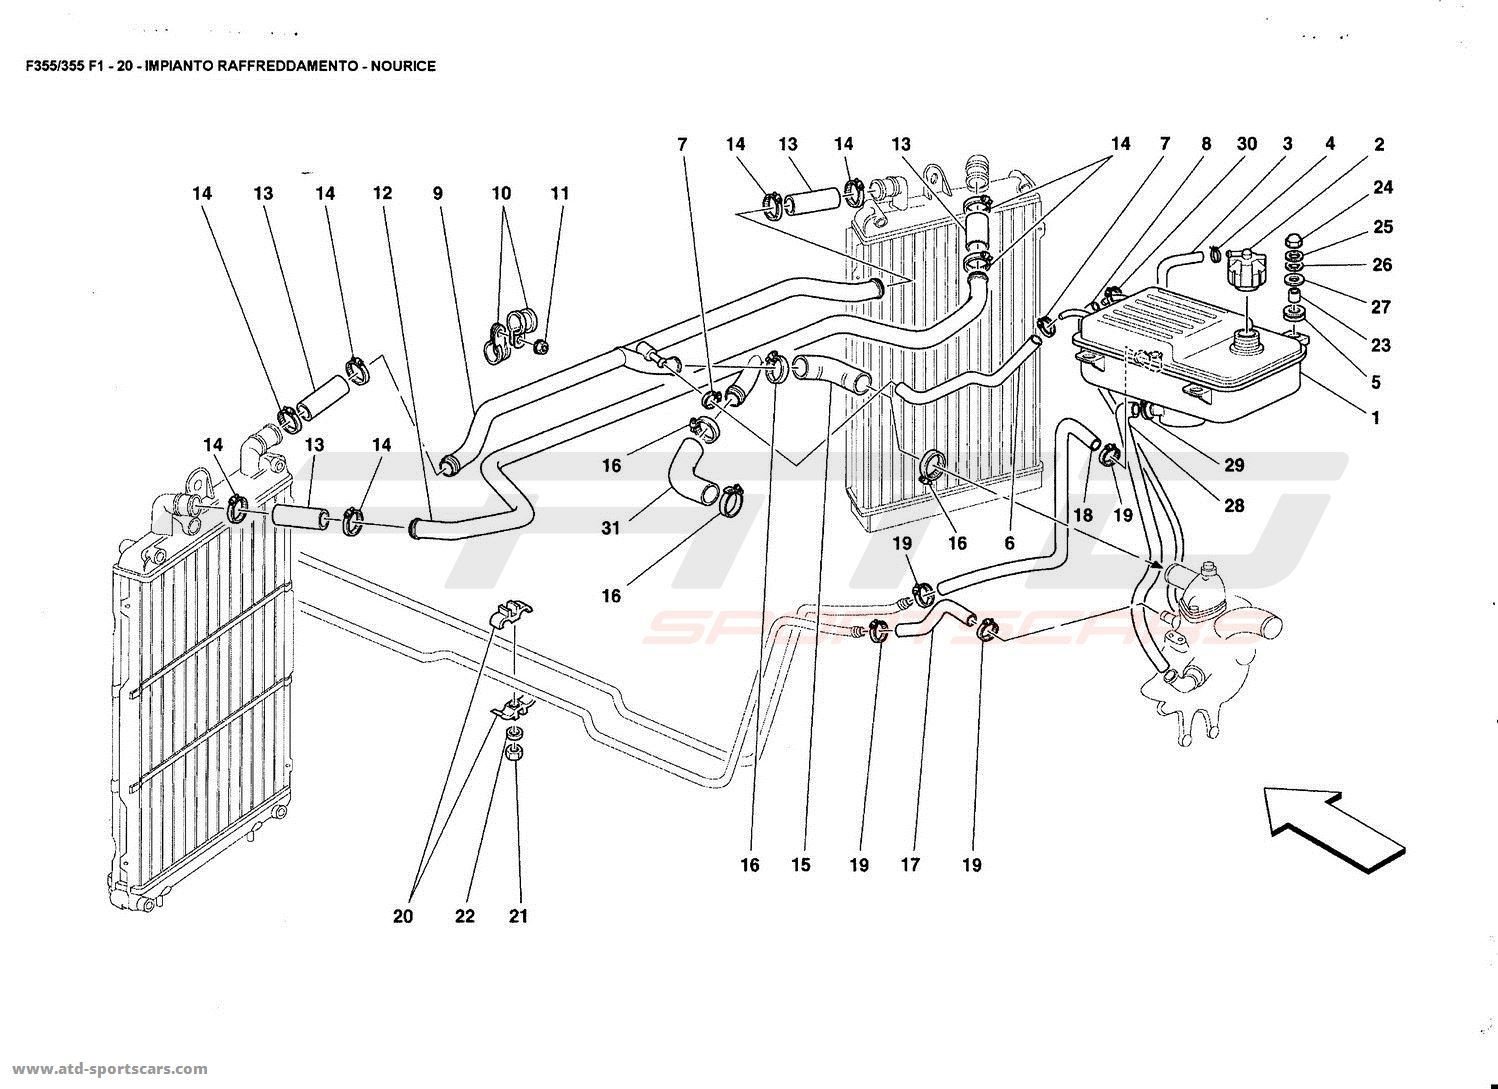 ferrari f355 - 5.2 f1 cooling - air-conditioning parts at atd, Wiring diagram